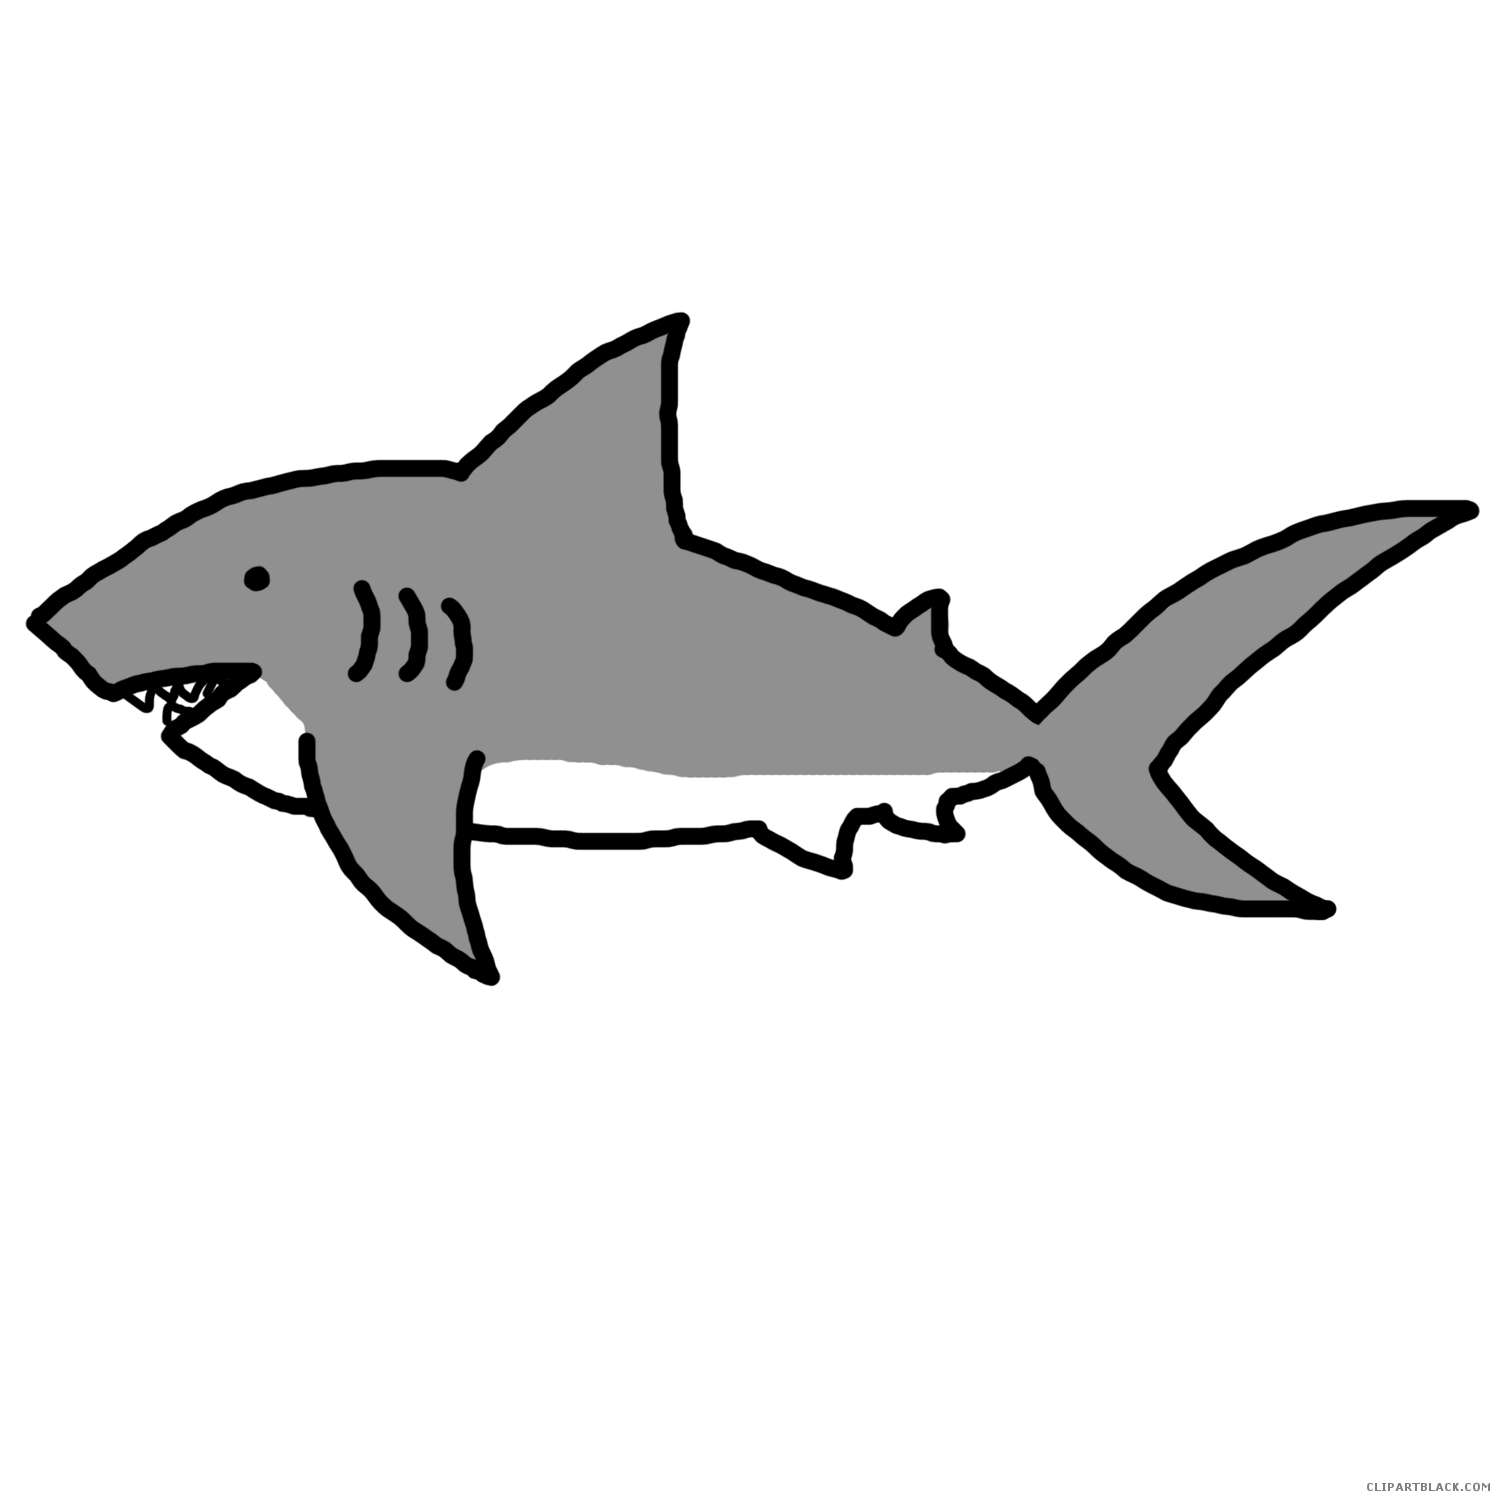 Page of clipartblack com. Clipart free shark